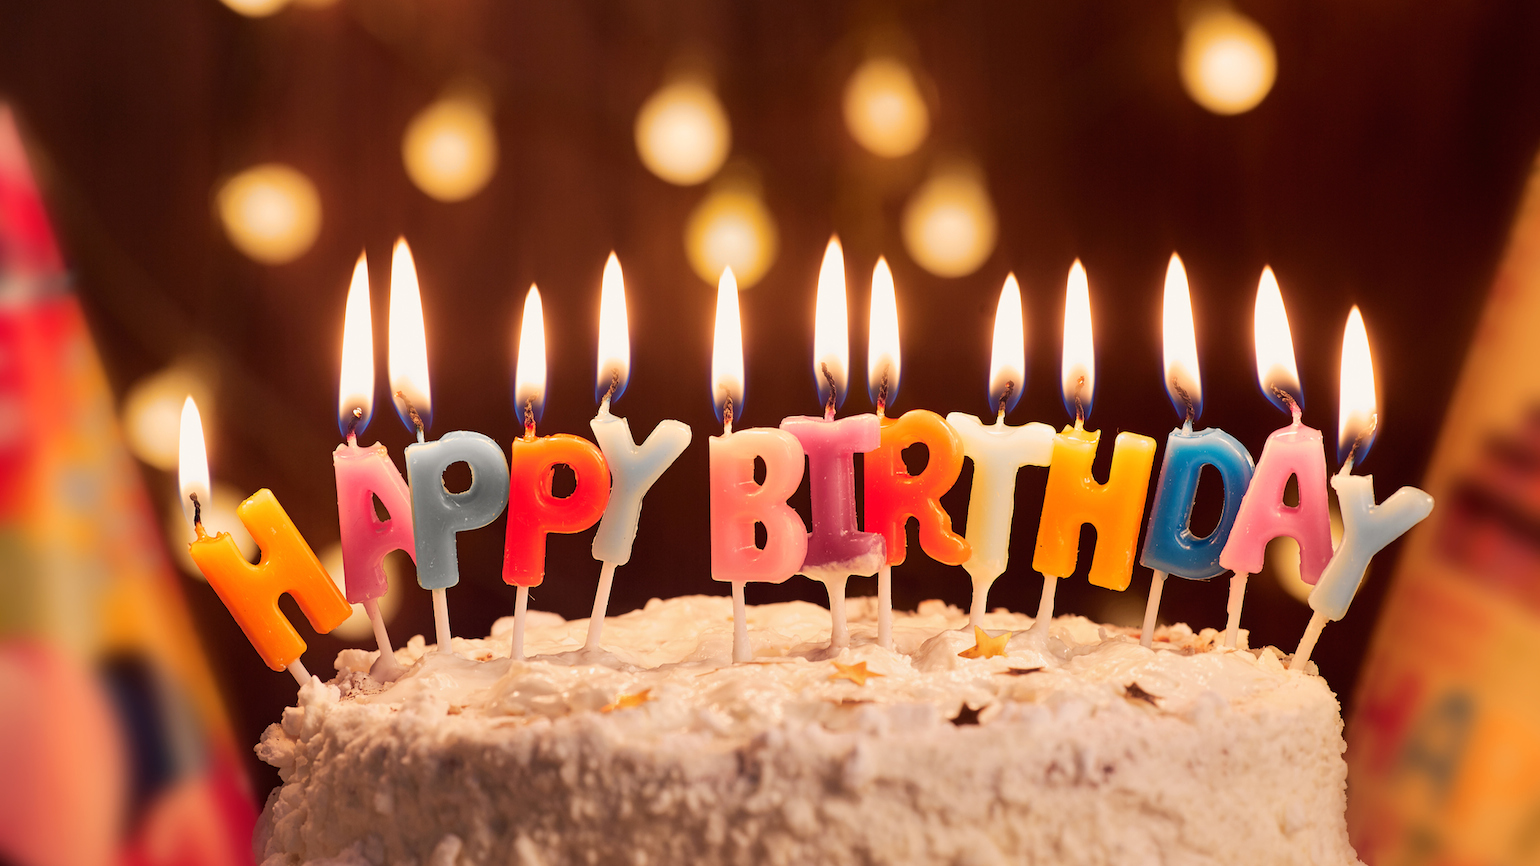 4 reasons to appreciate a December birthday | Guideposts